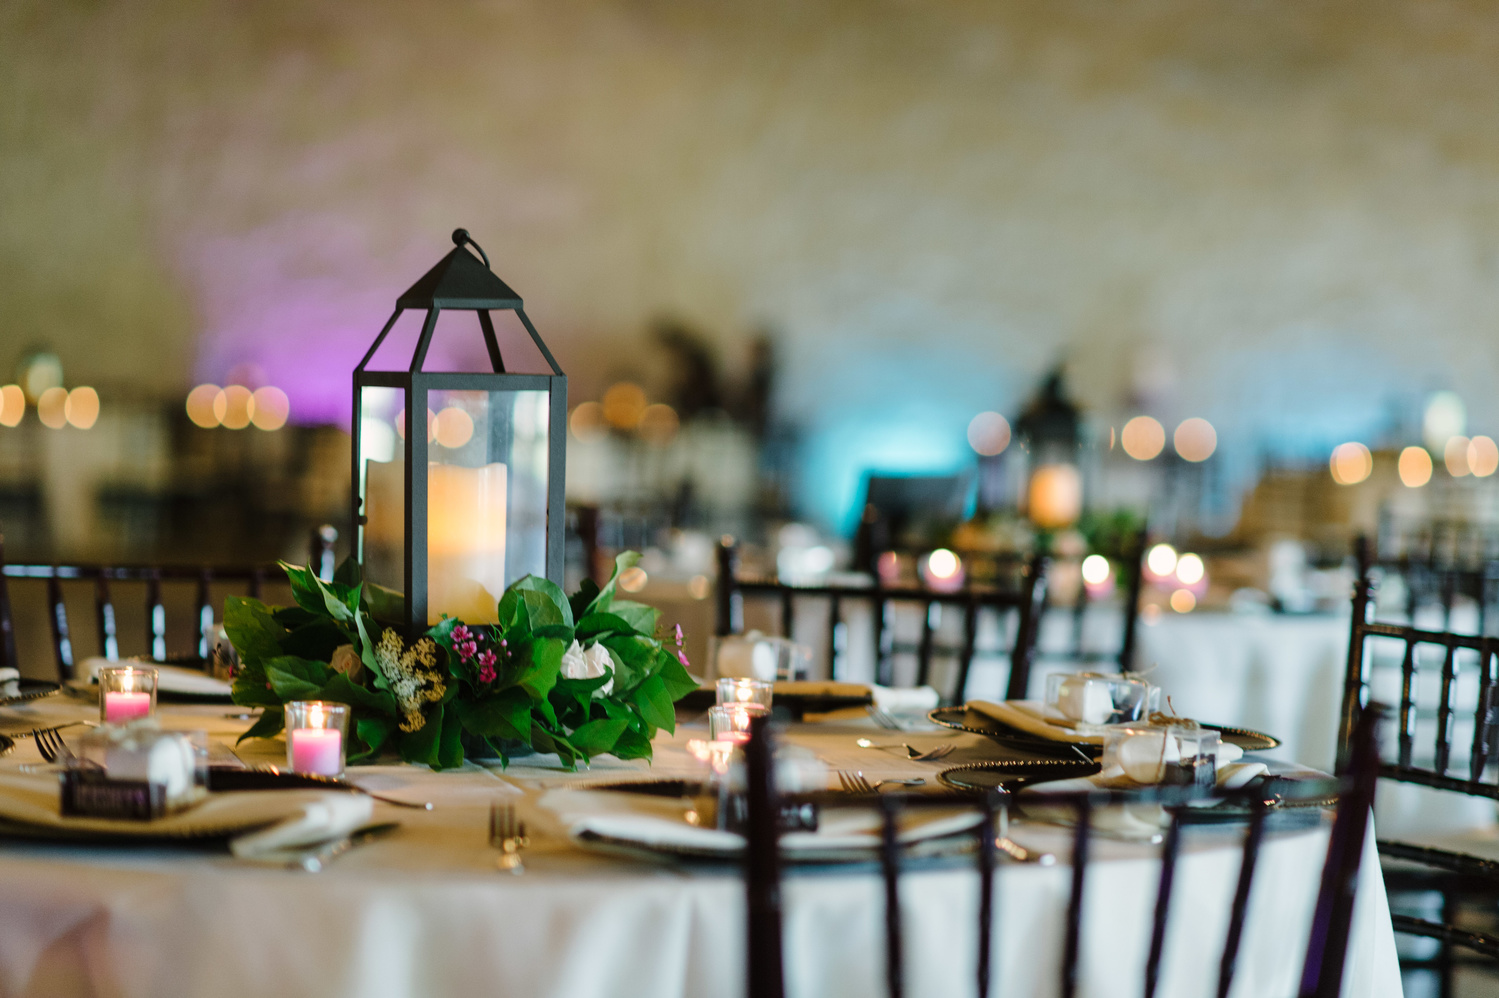 Lights, place settings, center pieces, and candles at a wedding